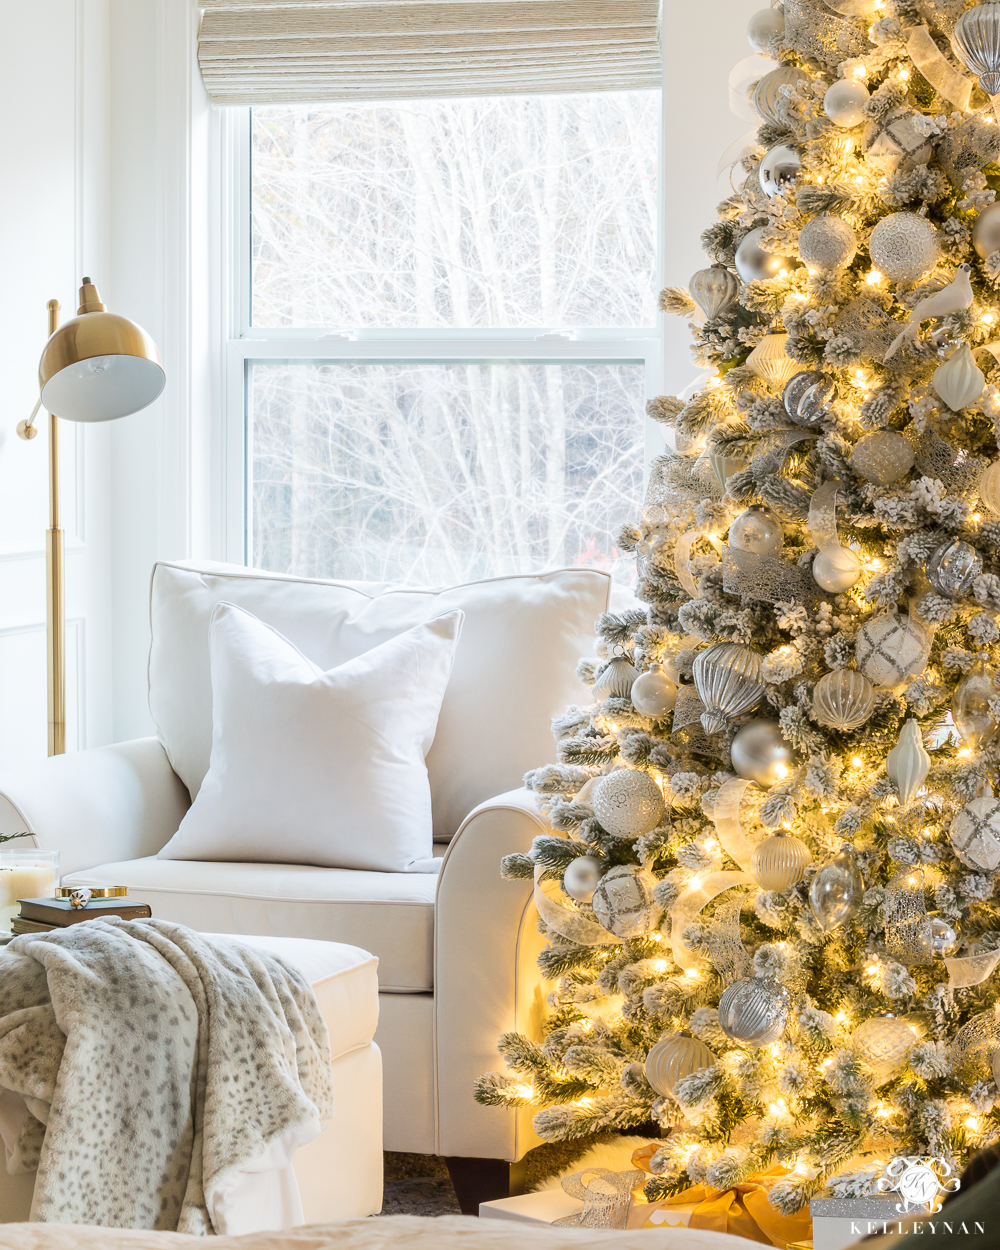 Cozy bedroom sitting area with a flocked Christmas tree